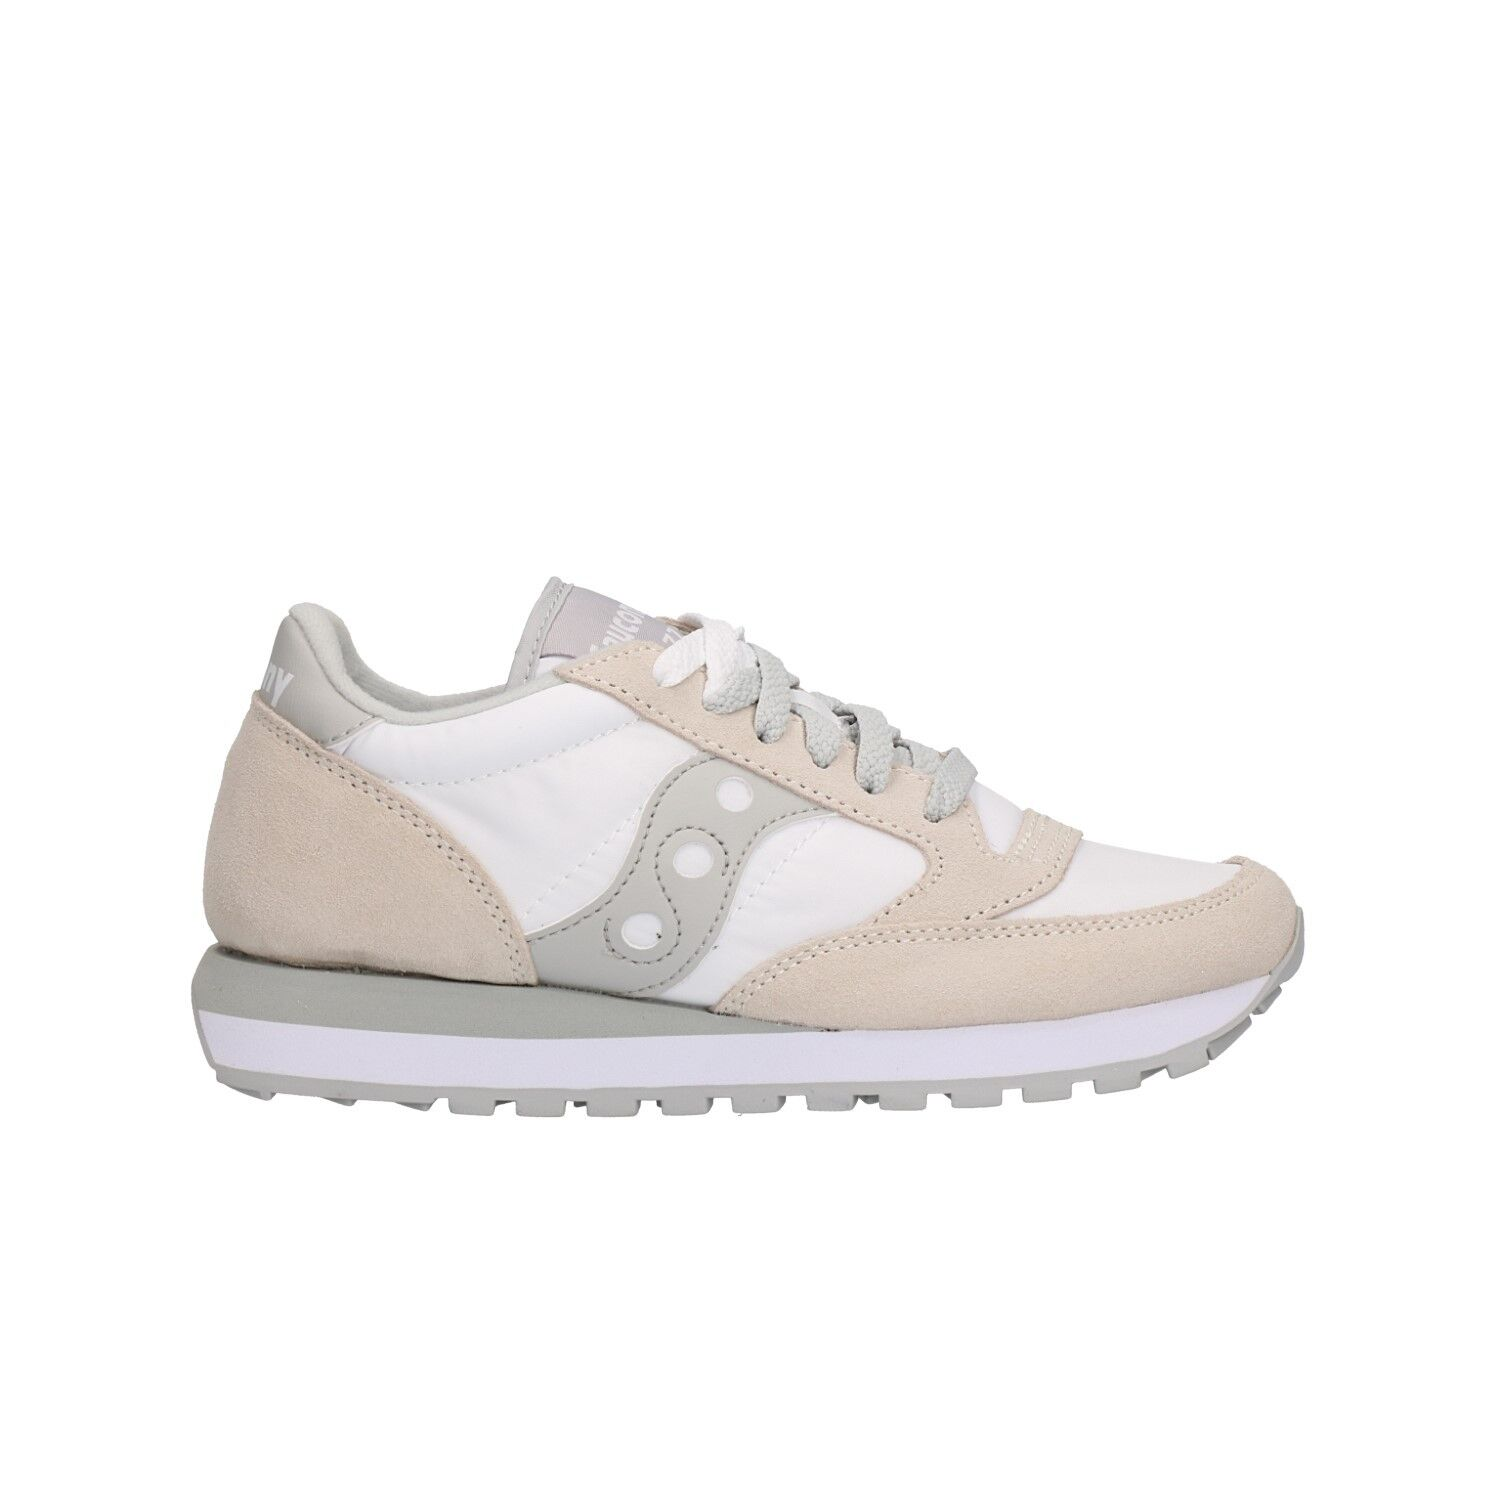 new product dcd4c 0841e saucony-jazz-sneakers-bianco-scarpe-donna-mod-2044-396.jpg